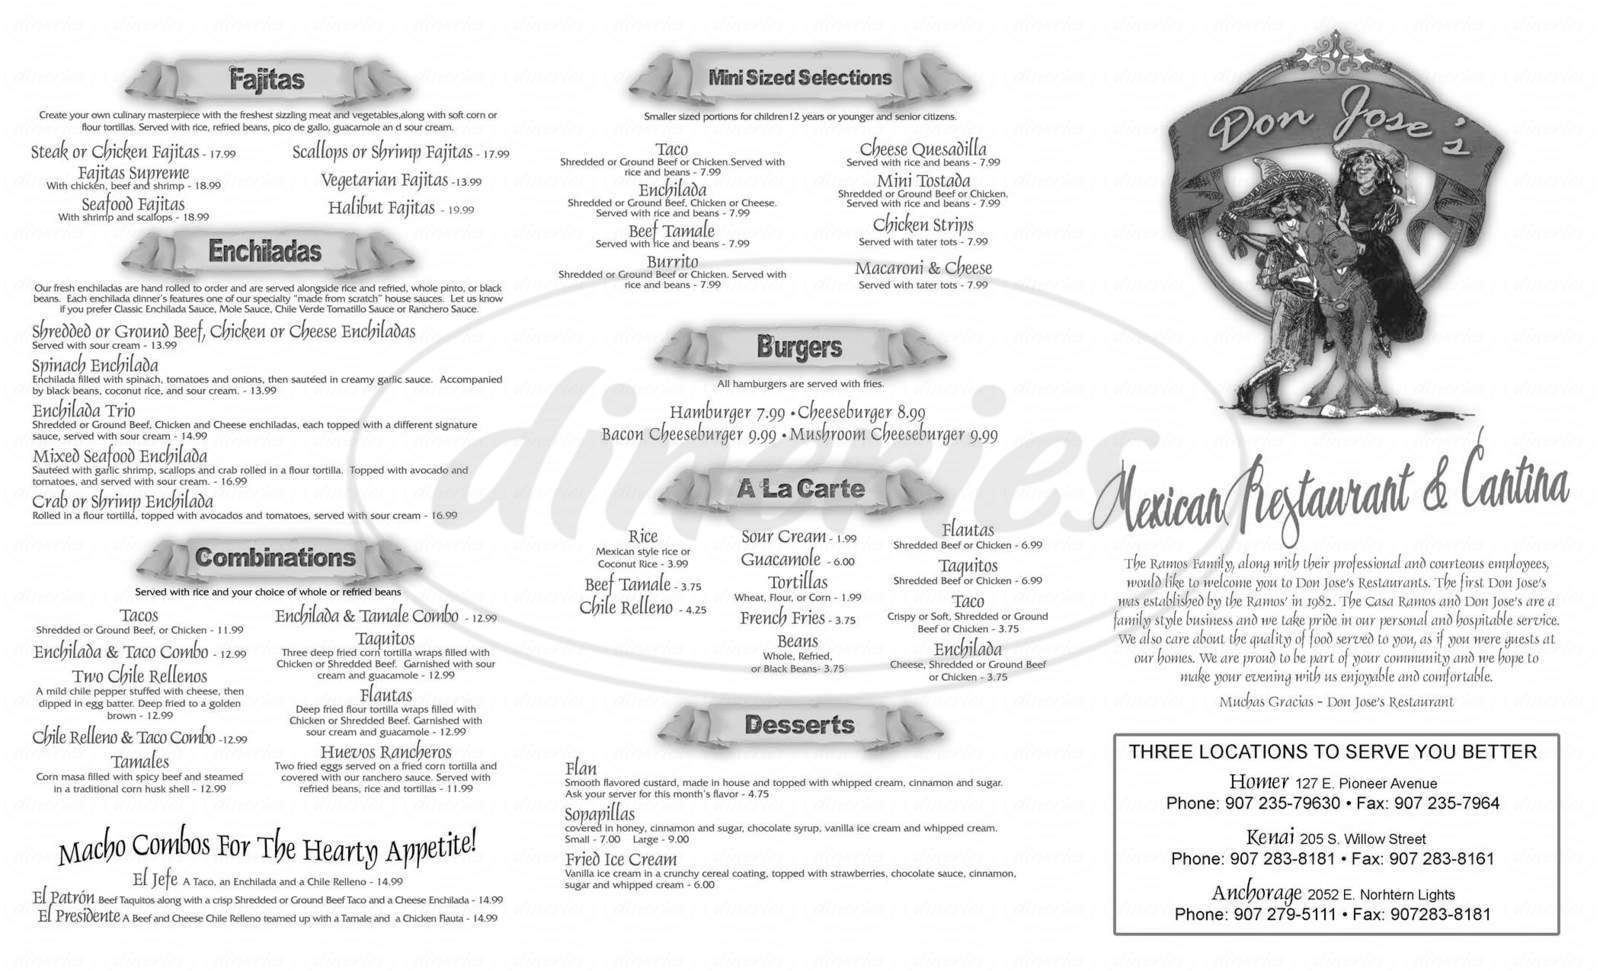 menu for Don Jose's